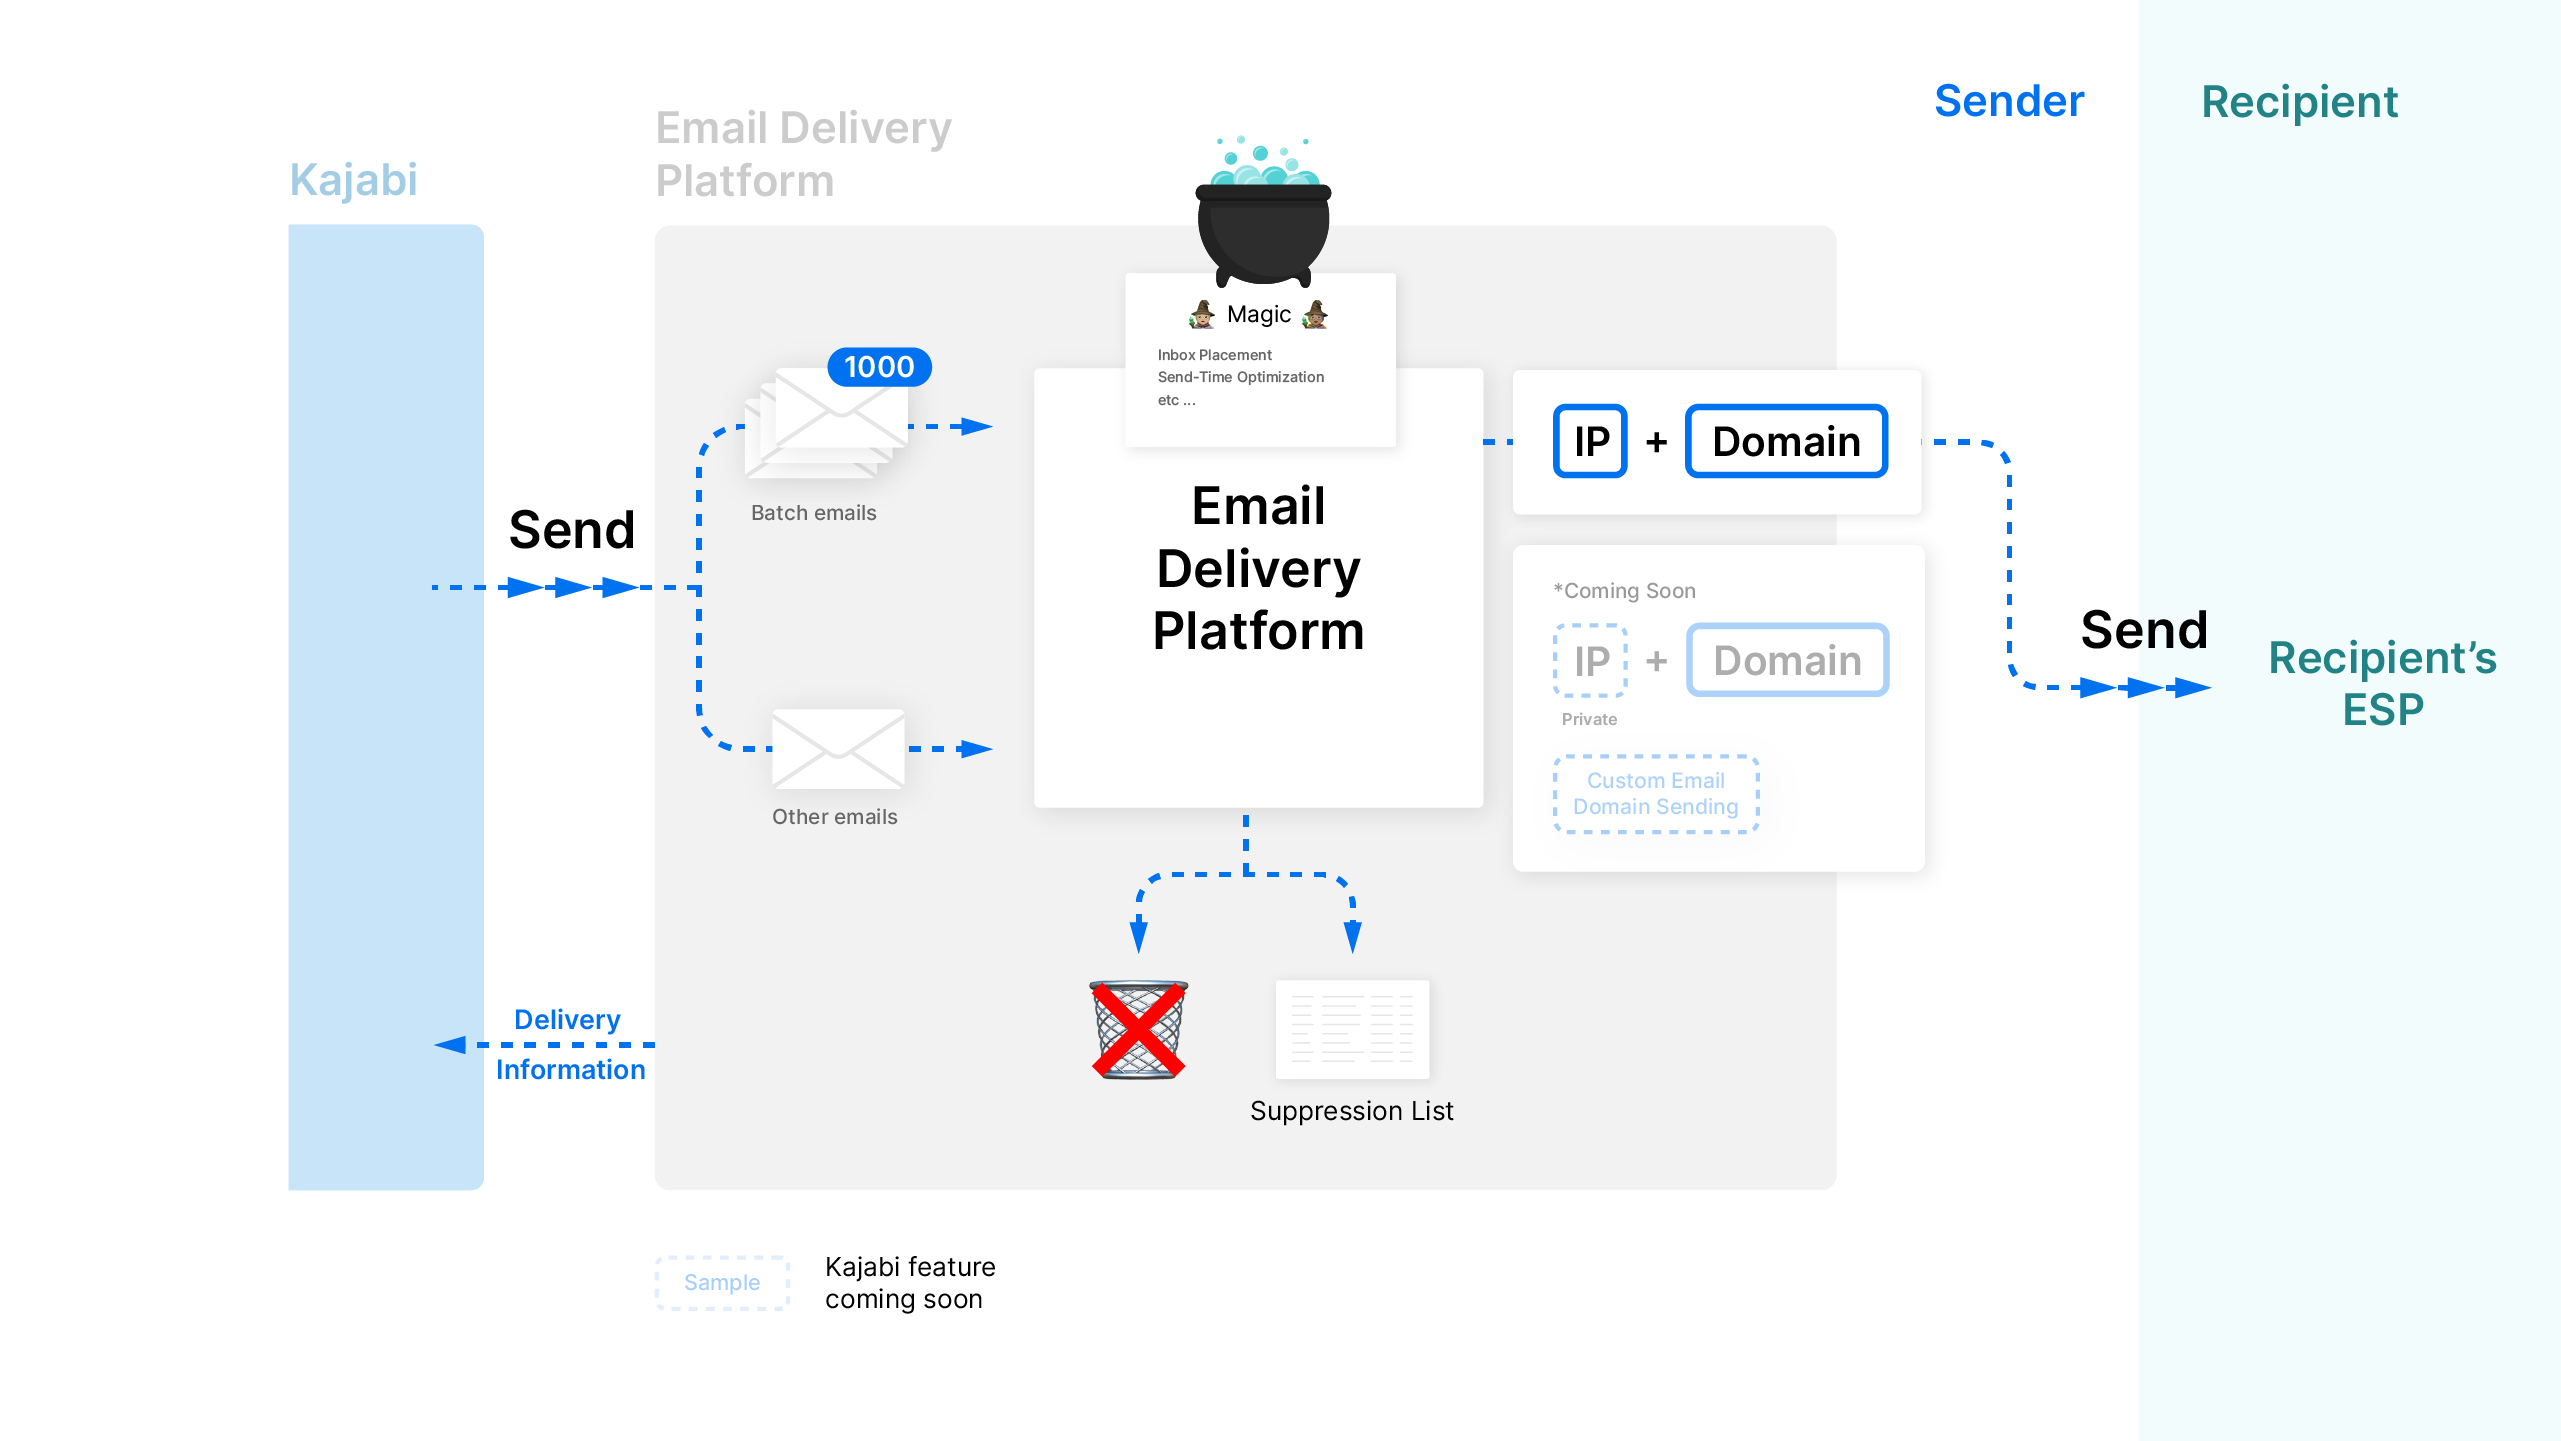 Kajabi email delivery path from internal email delivery platform to recipient's ESP